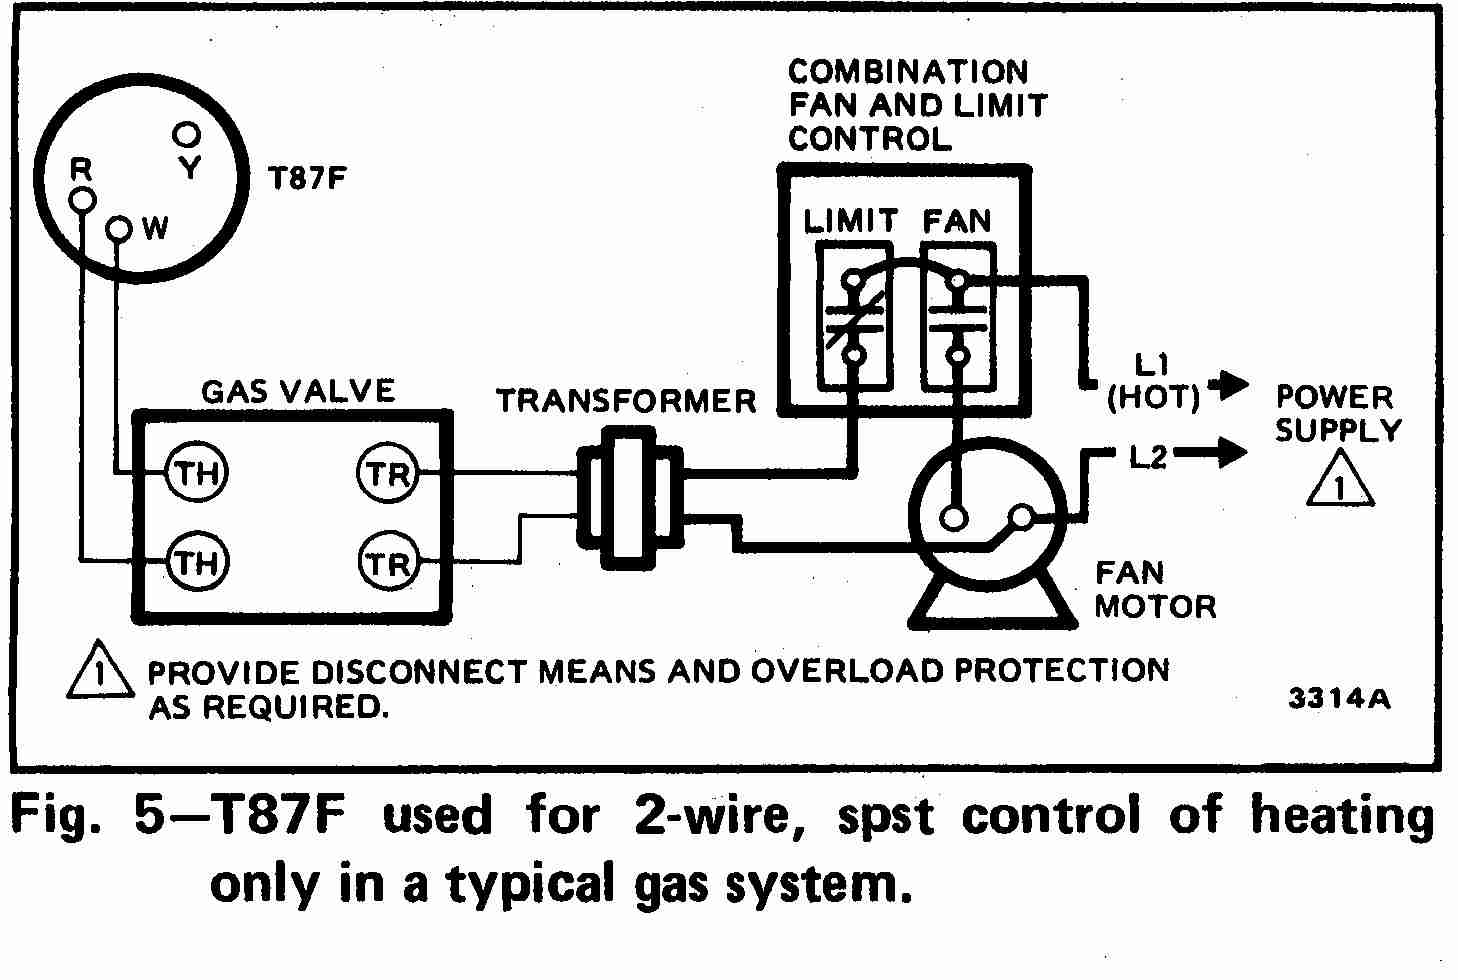 TT_T87F_0002_2Wg_DJF  Gas Furnace Thermostat Wiring Diagram Wires on roll out switch, coleman evcon, typical central ac, for lennox, blower motor, 2 wire thermostat, gms80453anbd, mobile home intertherm, 120 for old, air temp,